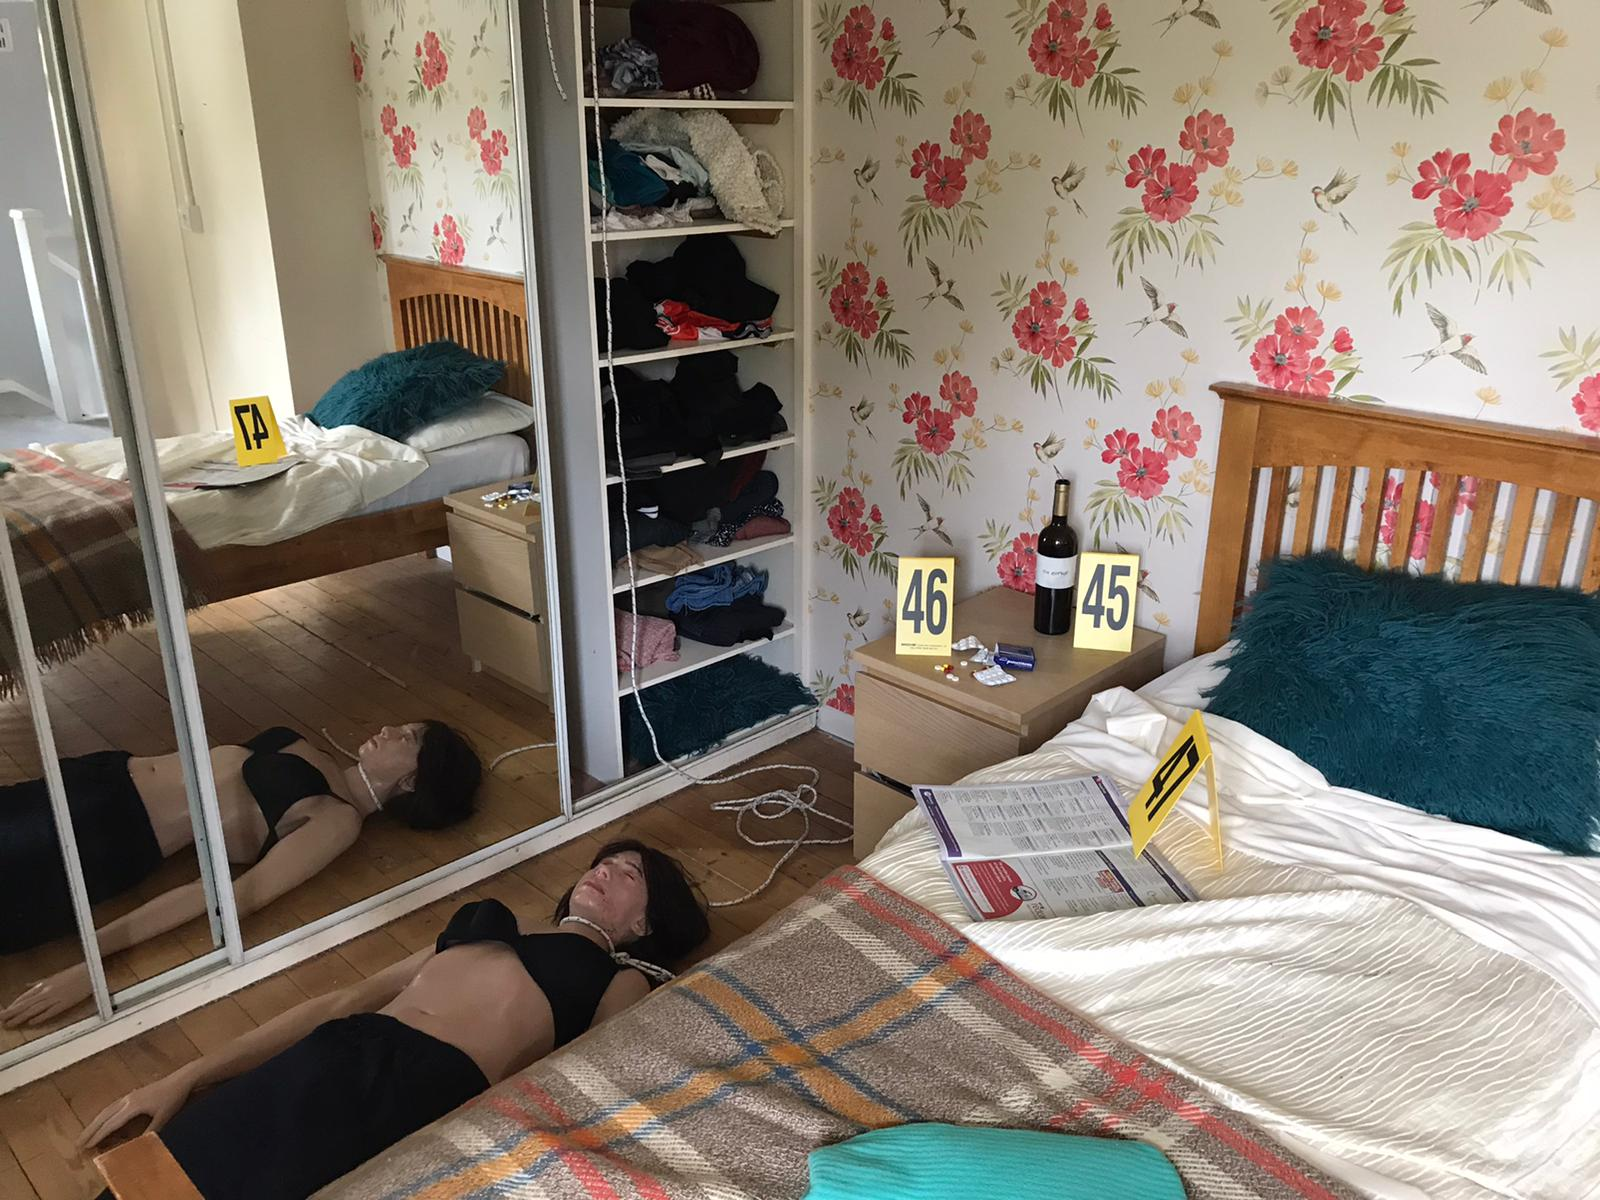 Bedroom at CSI training centre